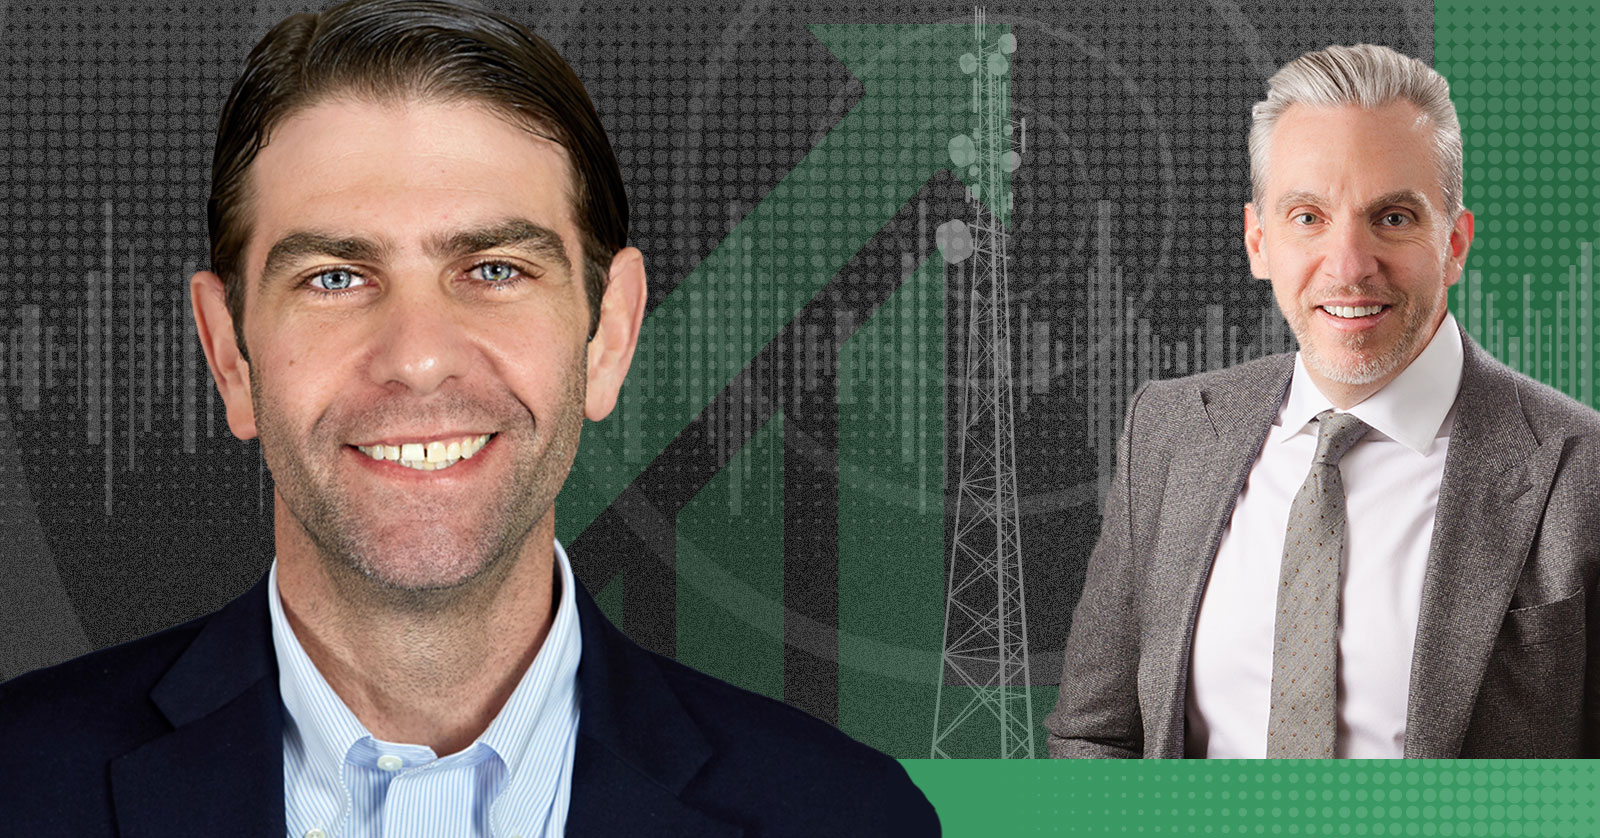 230: Mission: Radio to Digital, with Jamie Cohen